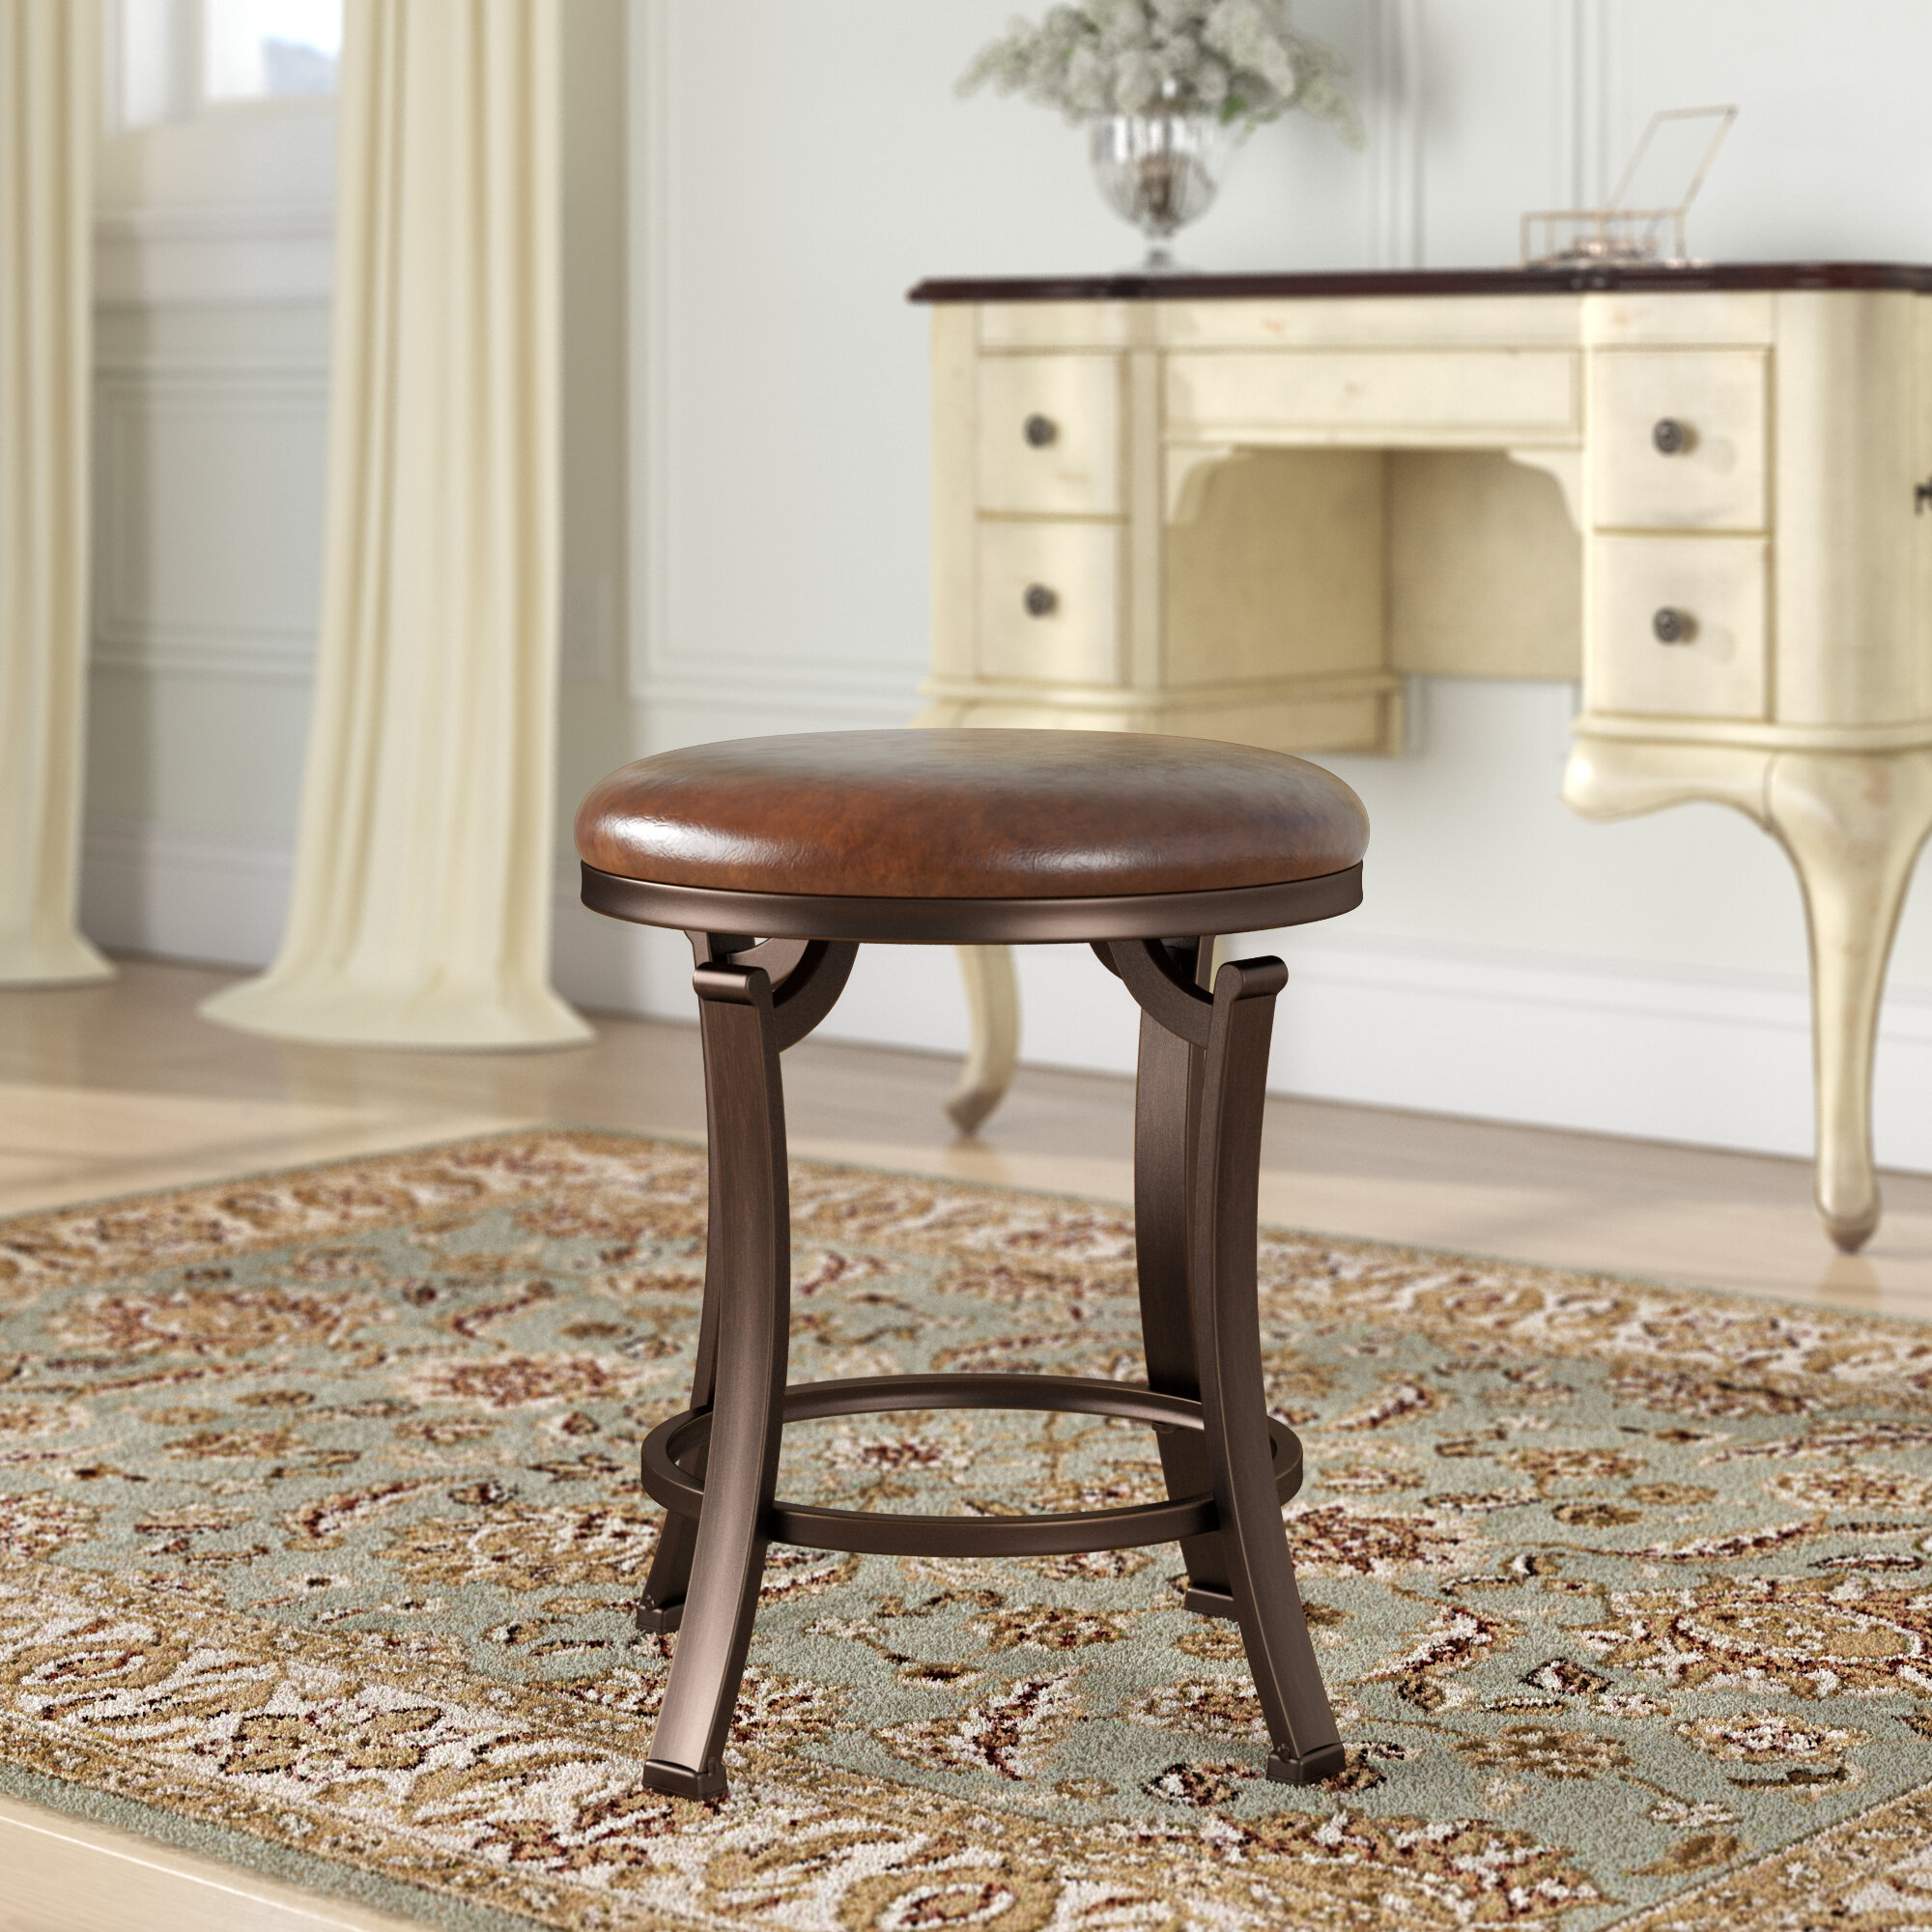 Wondrous Charlton Home Staten Backless Vanity Stool Reviews Wayfair Unemploymentrelief Wooden Chair Designs For Living Room Unemploymentrelieforg